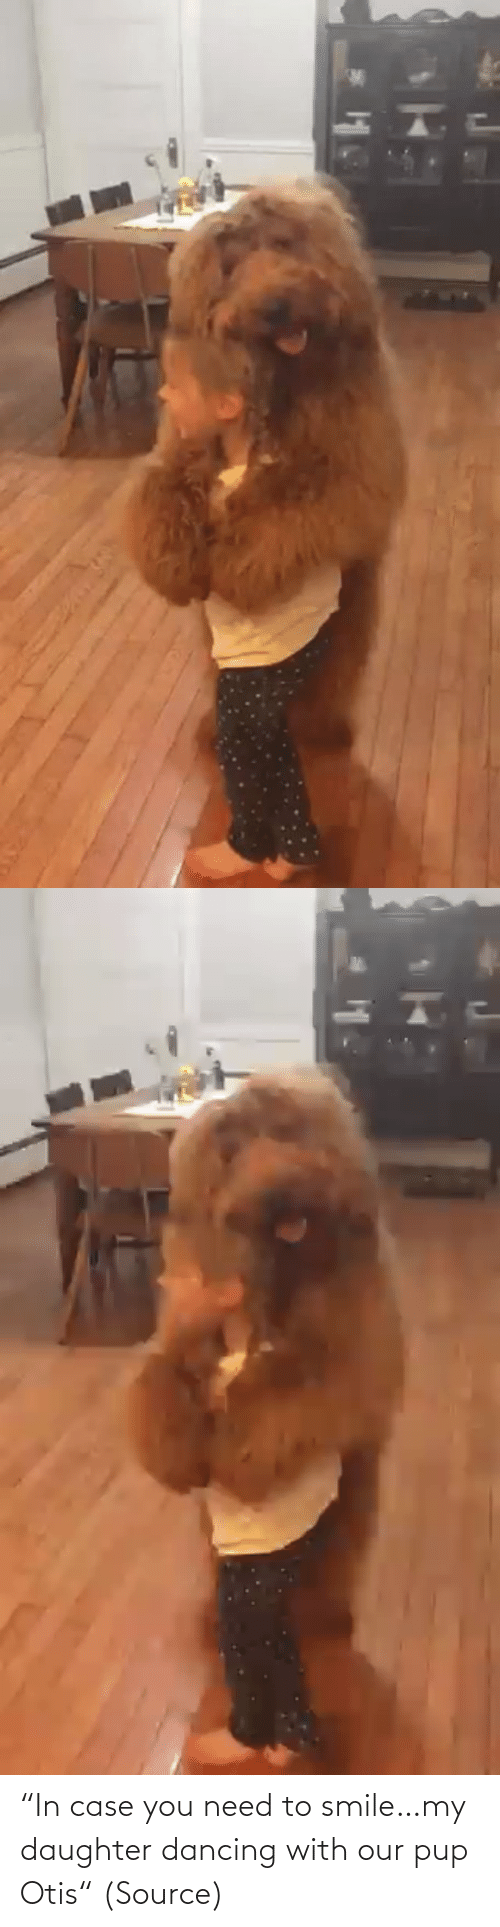 "case: ""In case you need to smile…my daughter dancing with our pup Otis"" (Source)"